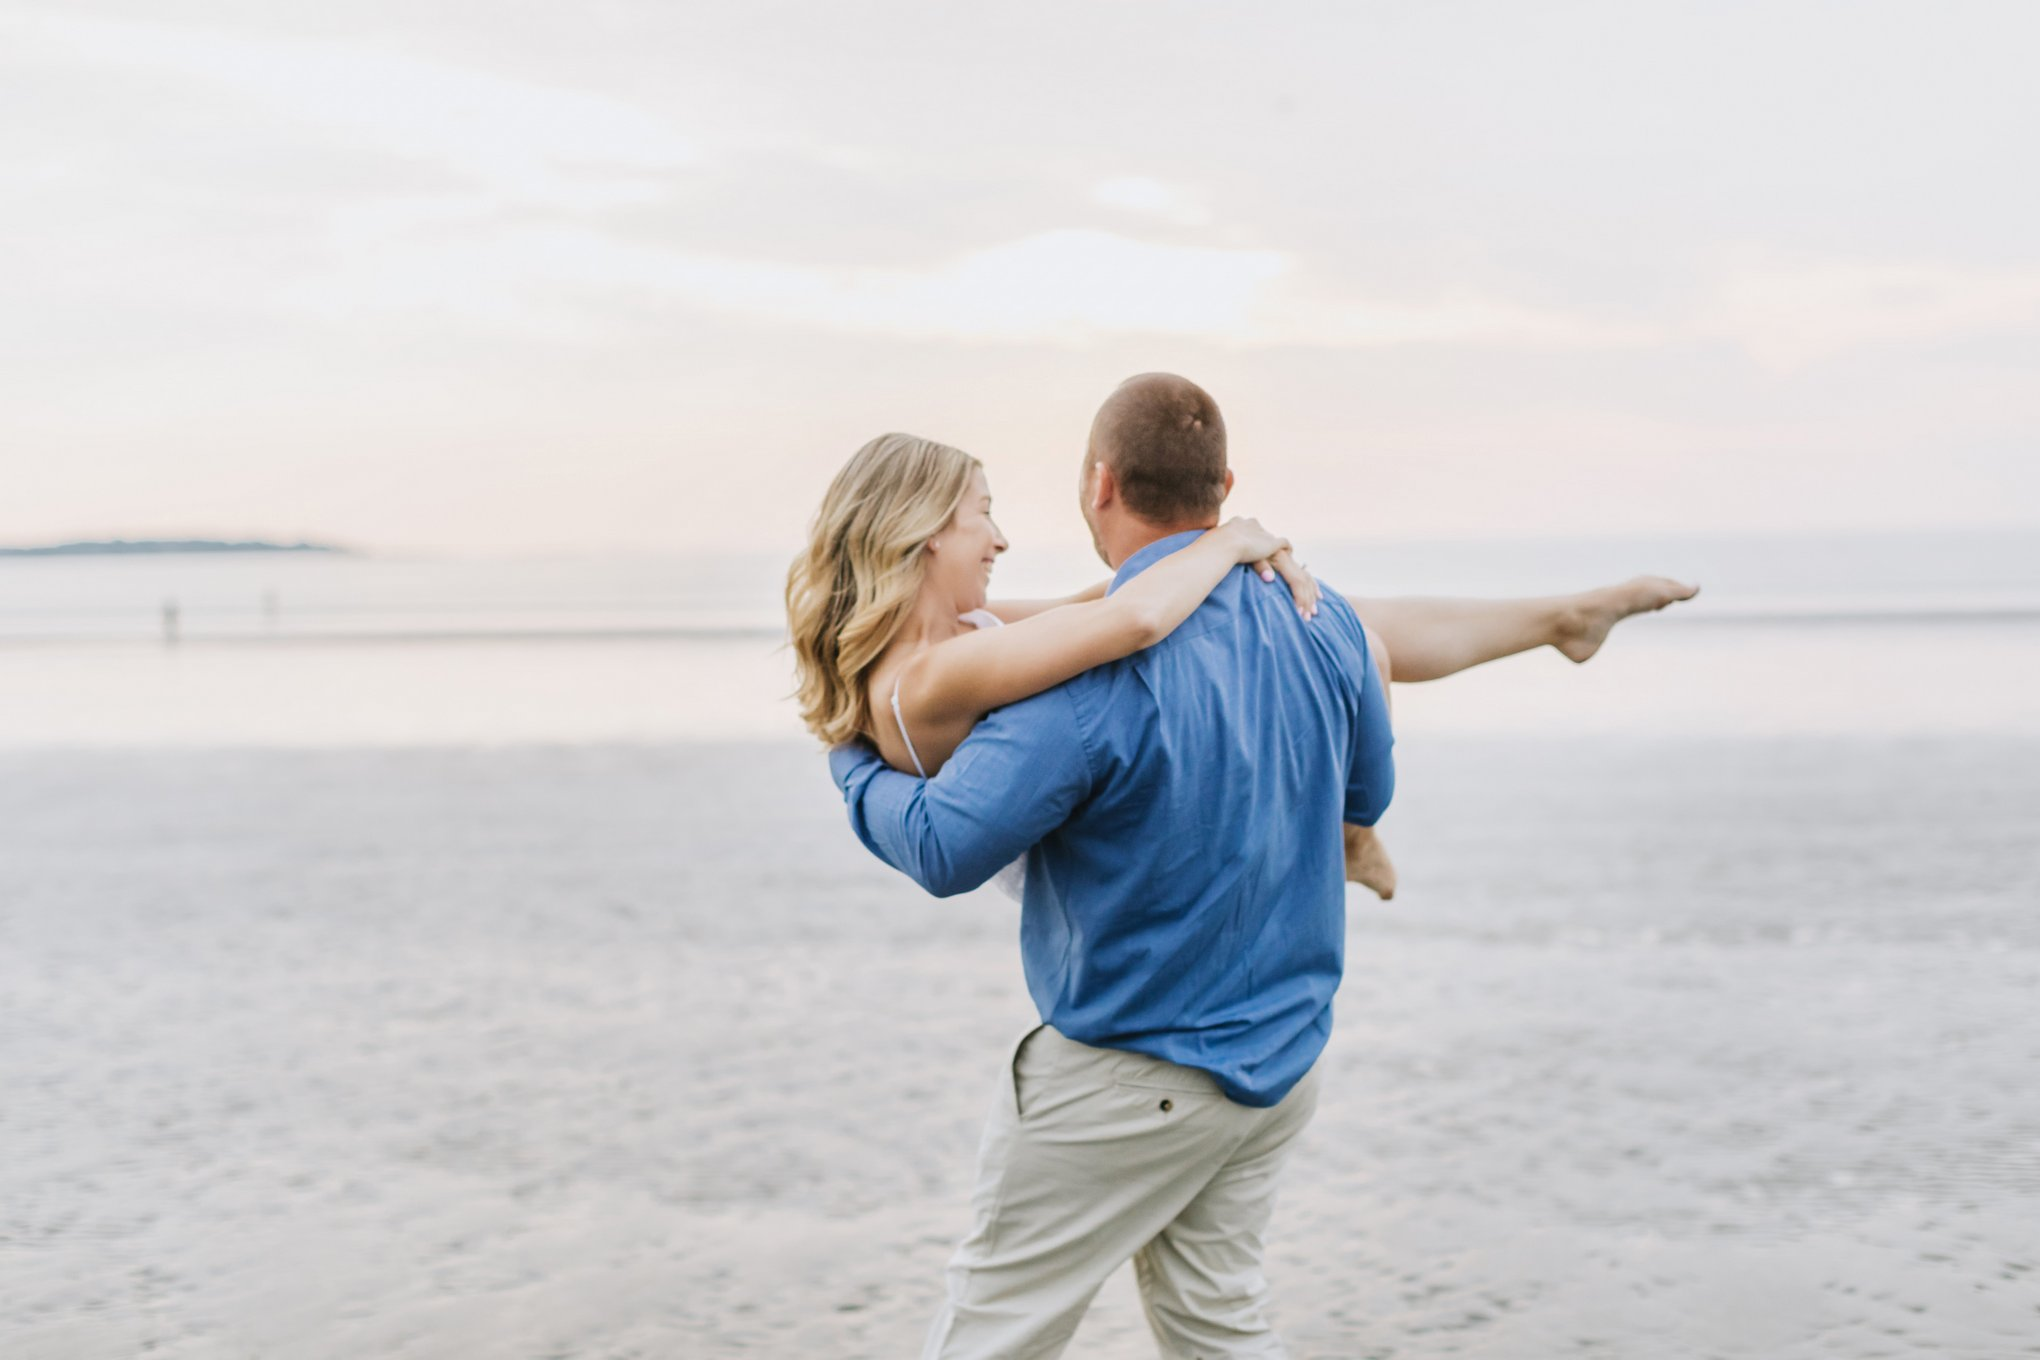 Boston_Beach_Engagement_Nahant_Photographer-22.jpg